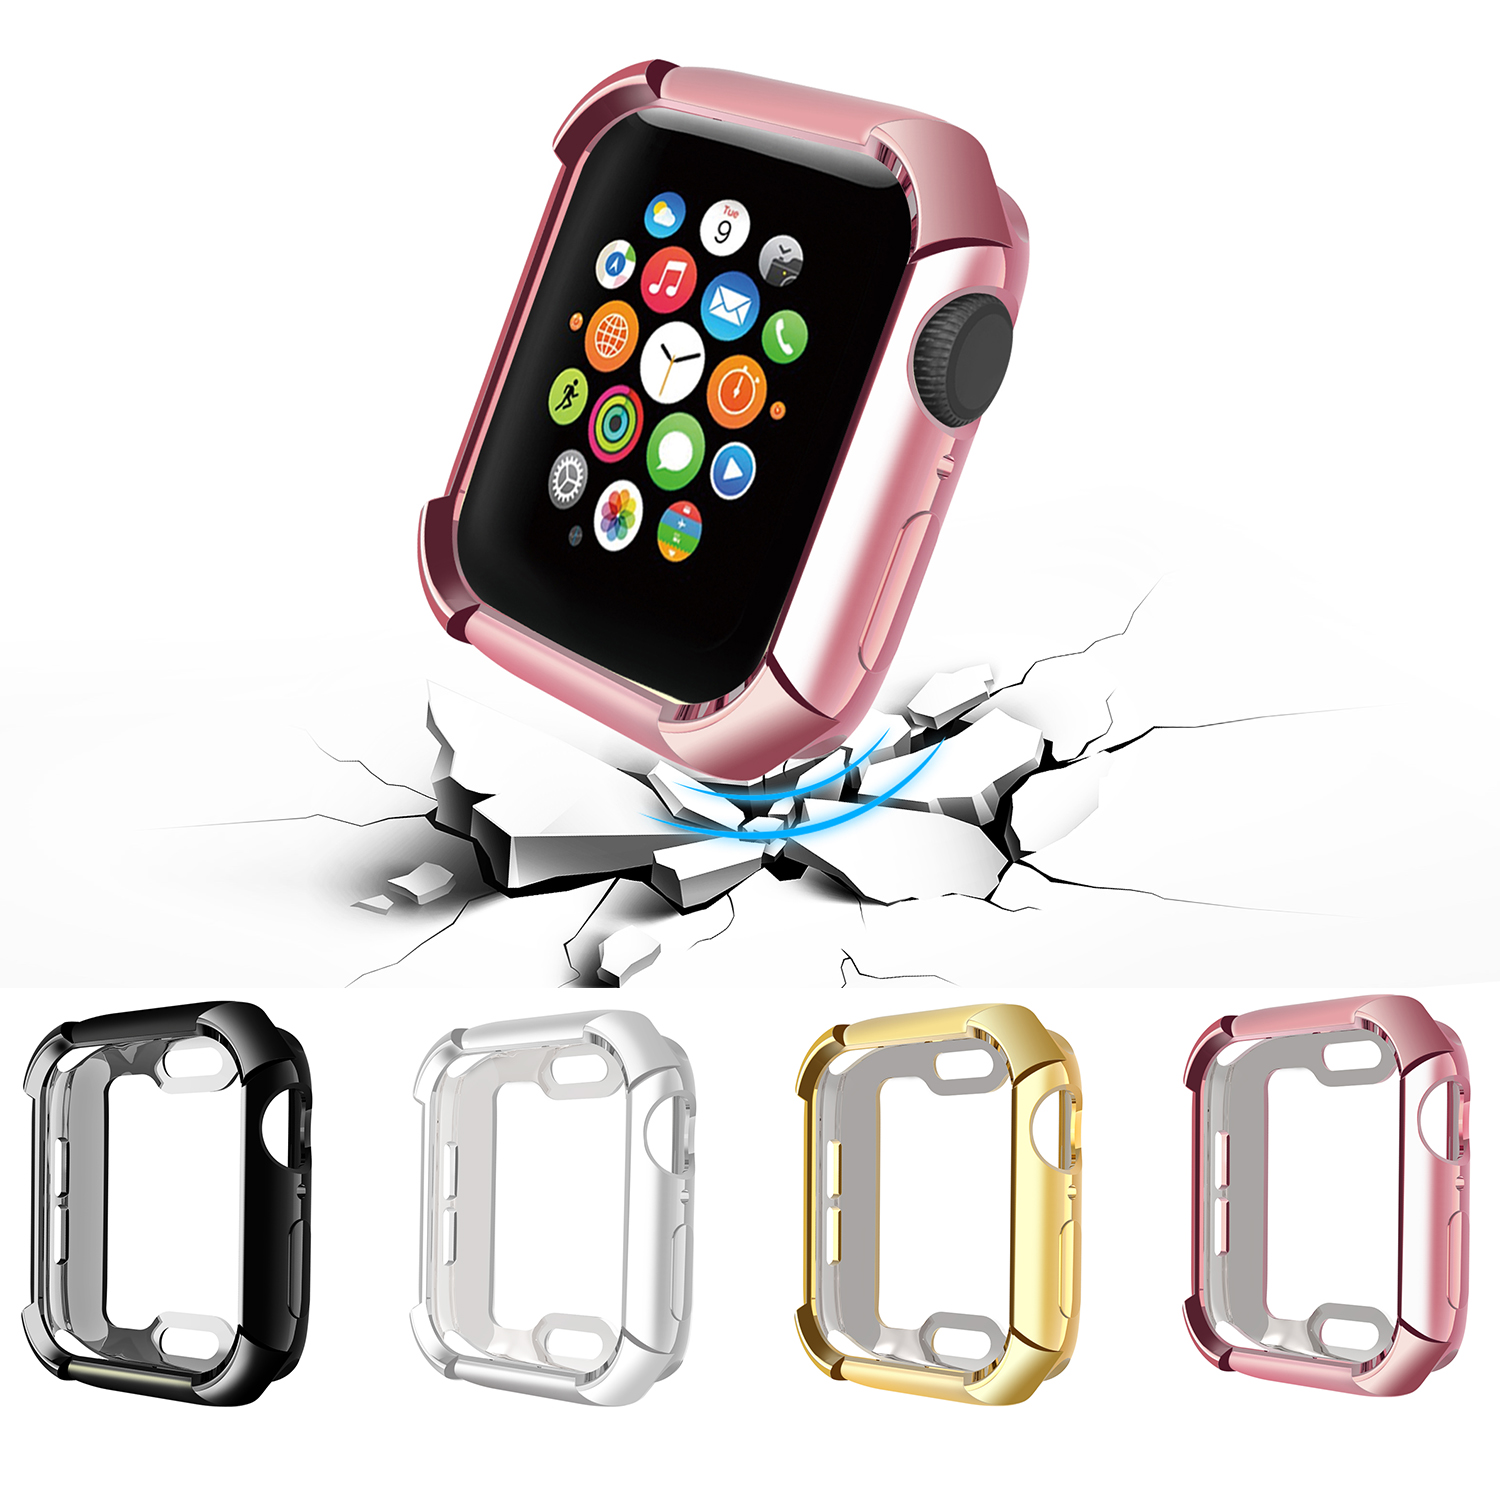 Watch Cover Case For Apple Watch 5/4 40mm 44mm  Full Protect Fall-proof Plating TPU Cases For IWatch Series 5 4 42mm 38mm